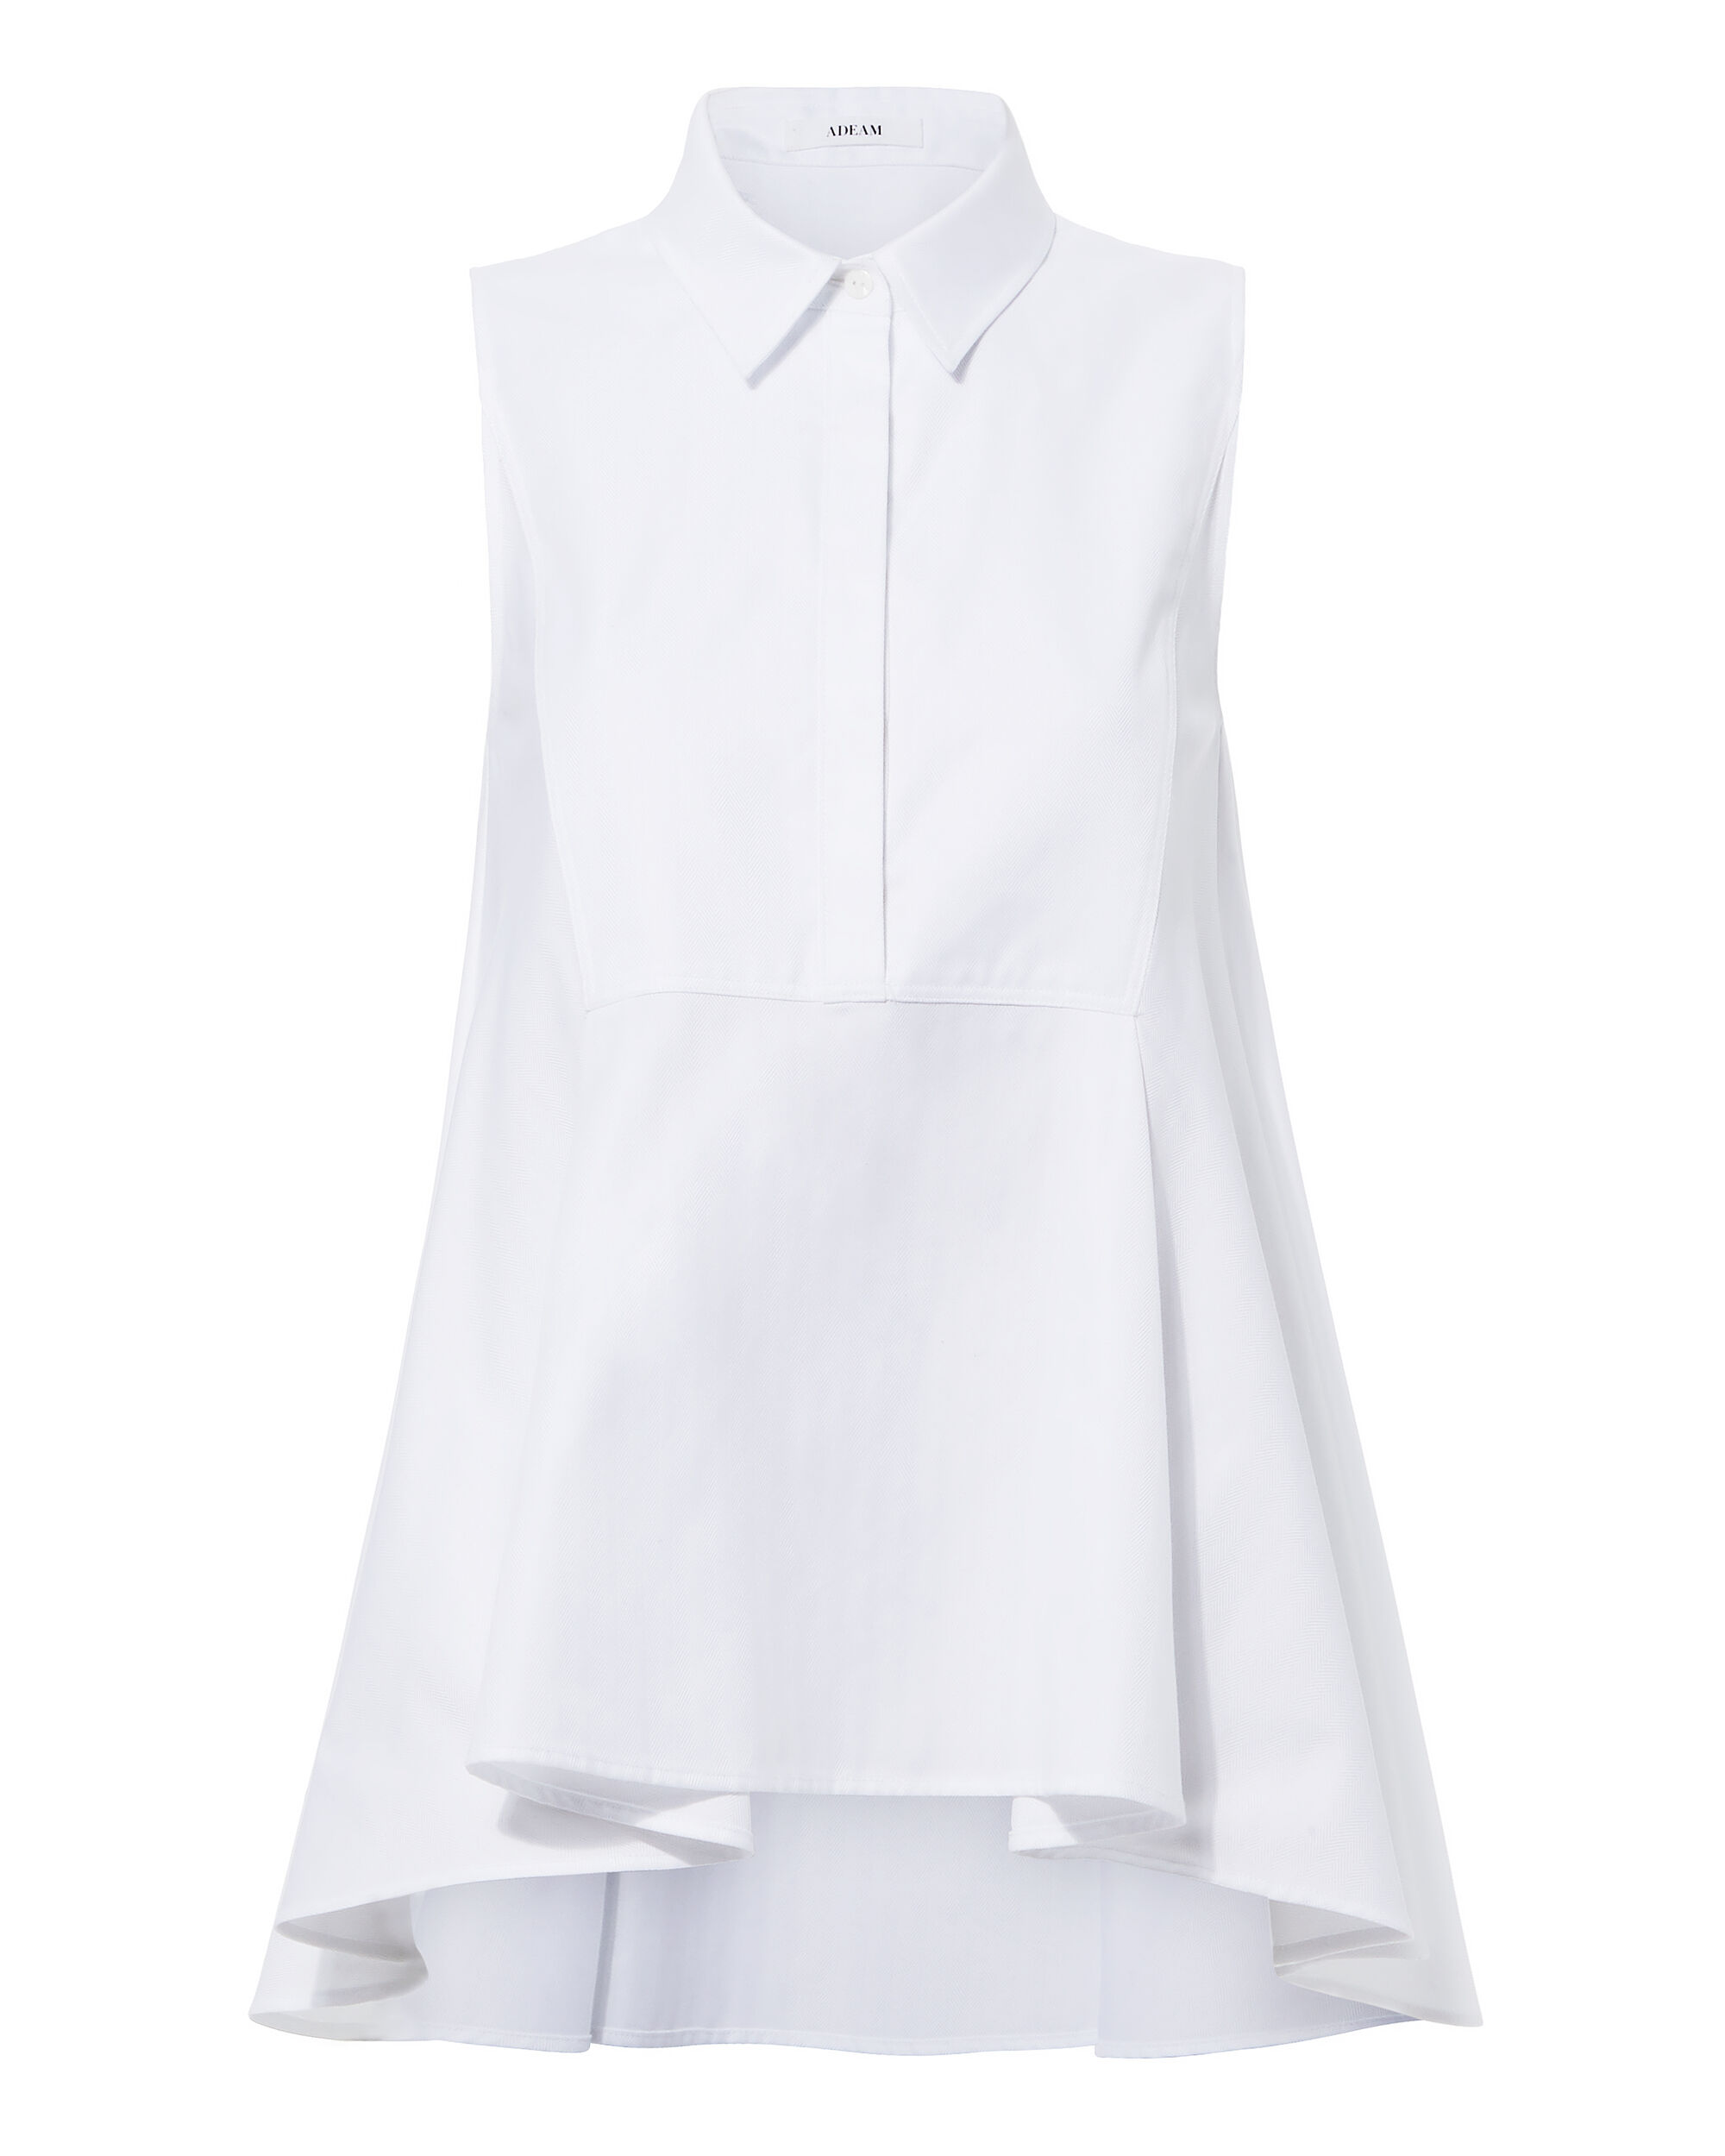 ADEAM White High-Low Top